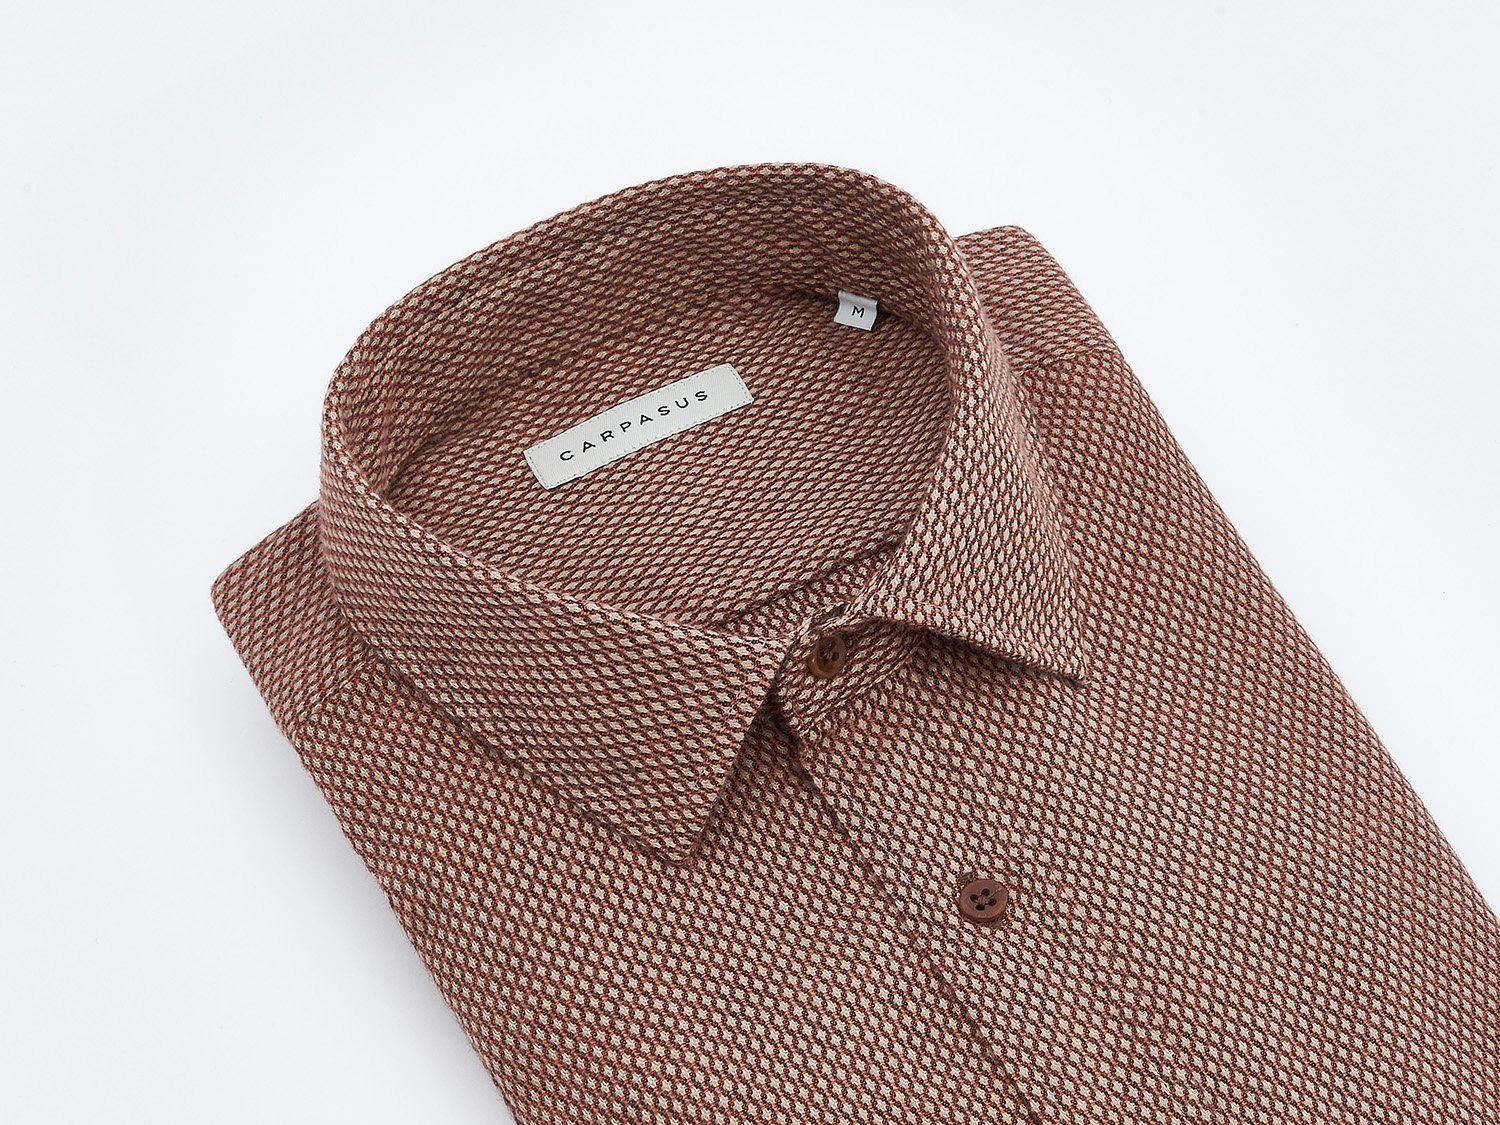 carpasus sustainable organic cotton shirt lynx sand. Nachhaltiges Carpasus Hemd Lynx aus Bio Baumwolle in Sand